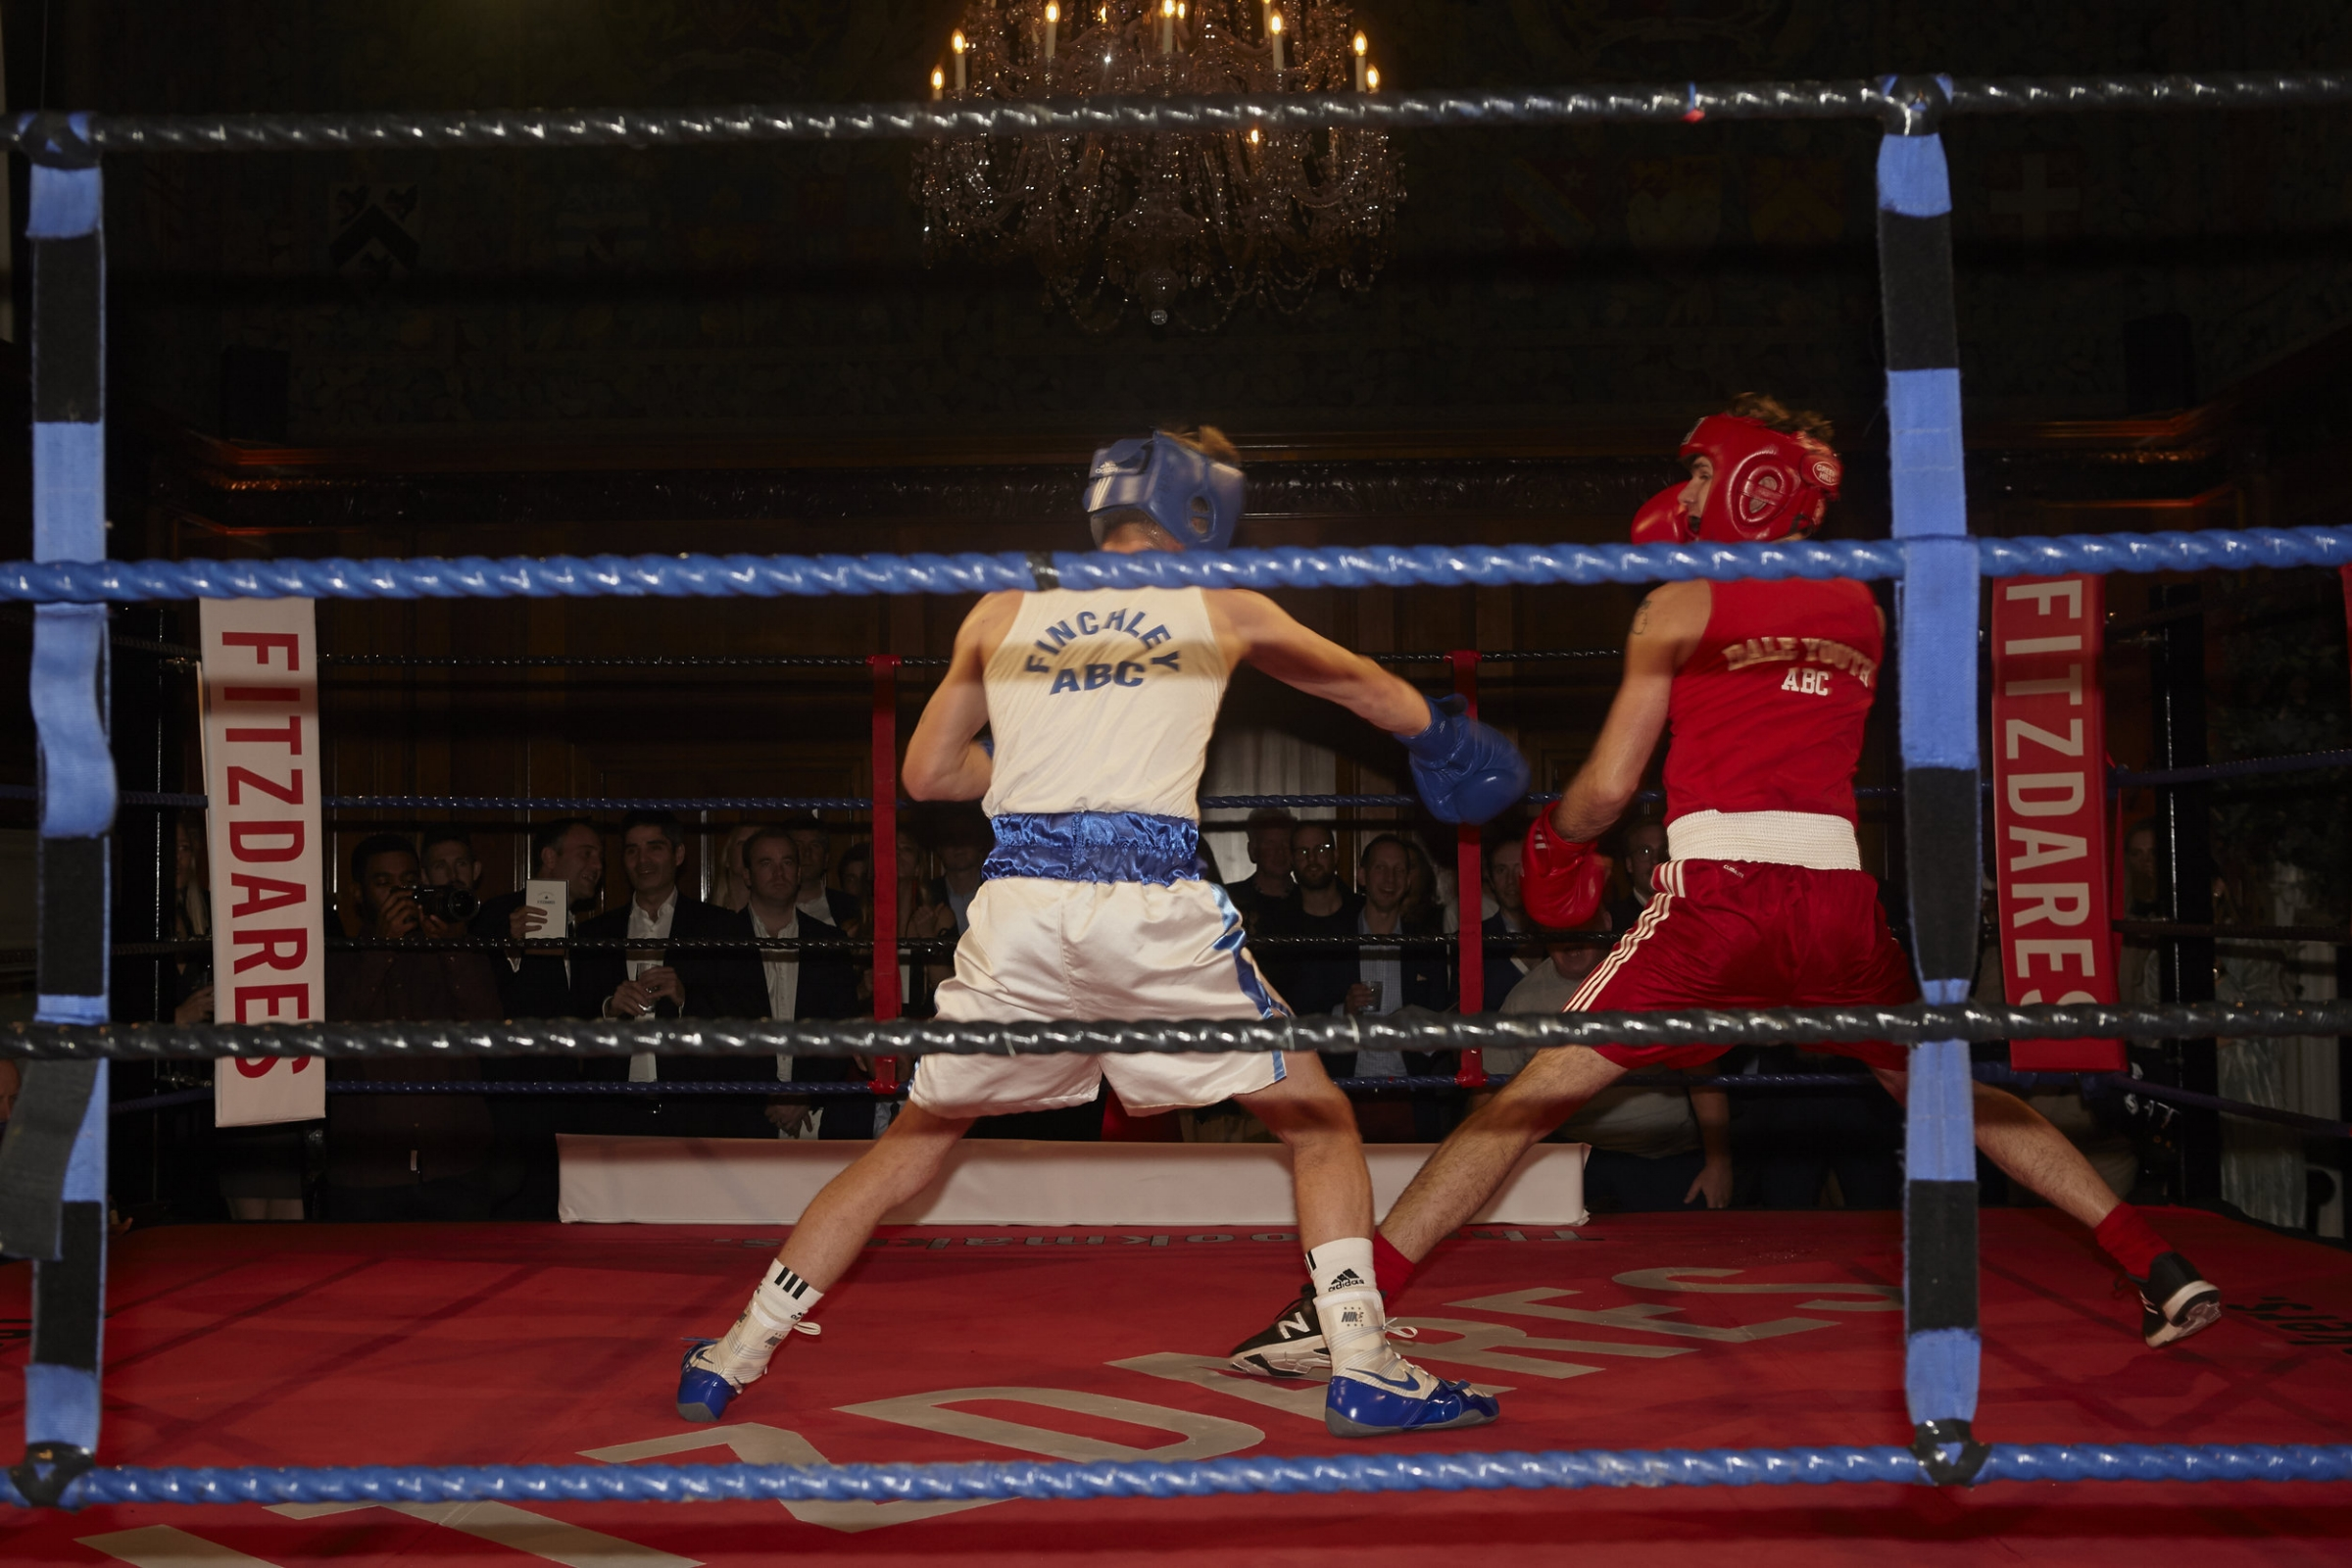 The doctor called off the final bout after Storey's opponent Kyran O'Neill took heavy damage